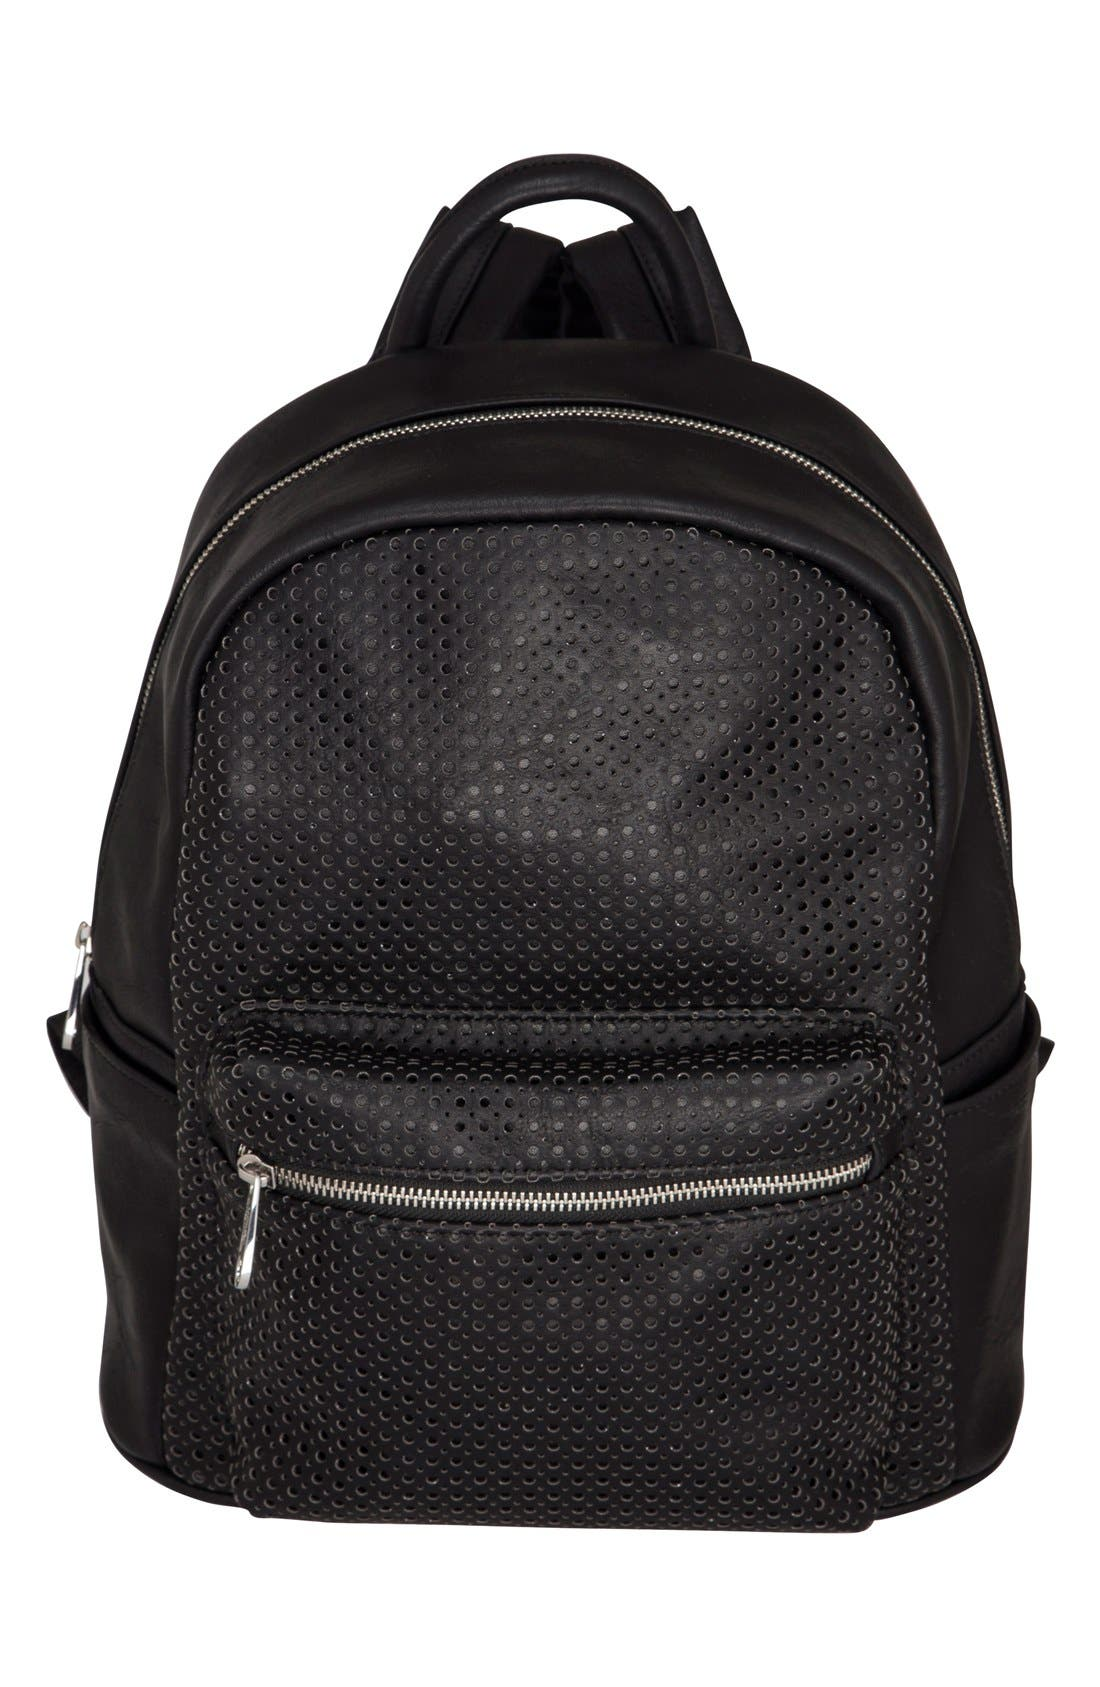 Urban Originals 'Lola' Perforated Vegan Leather Backpack